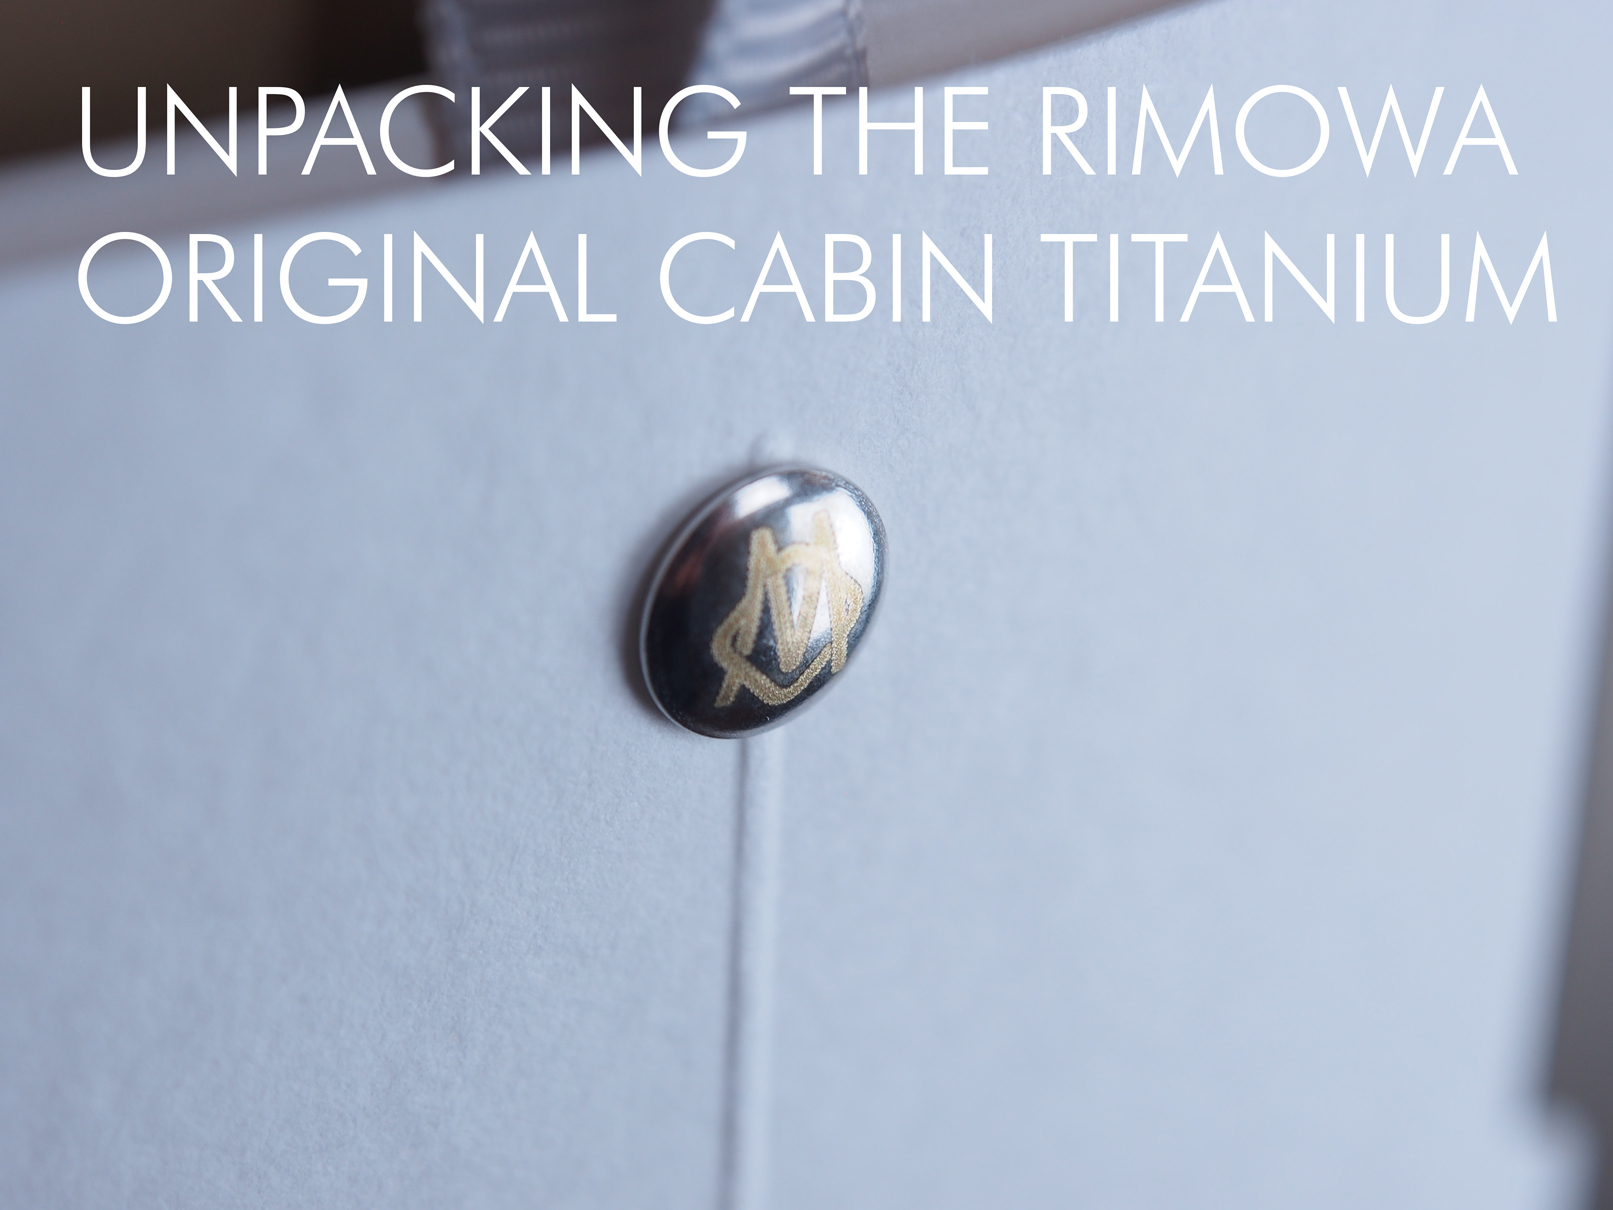 Unpacking The Rimowa Original Cabin Titanium